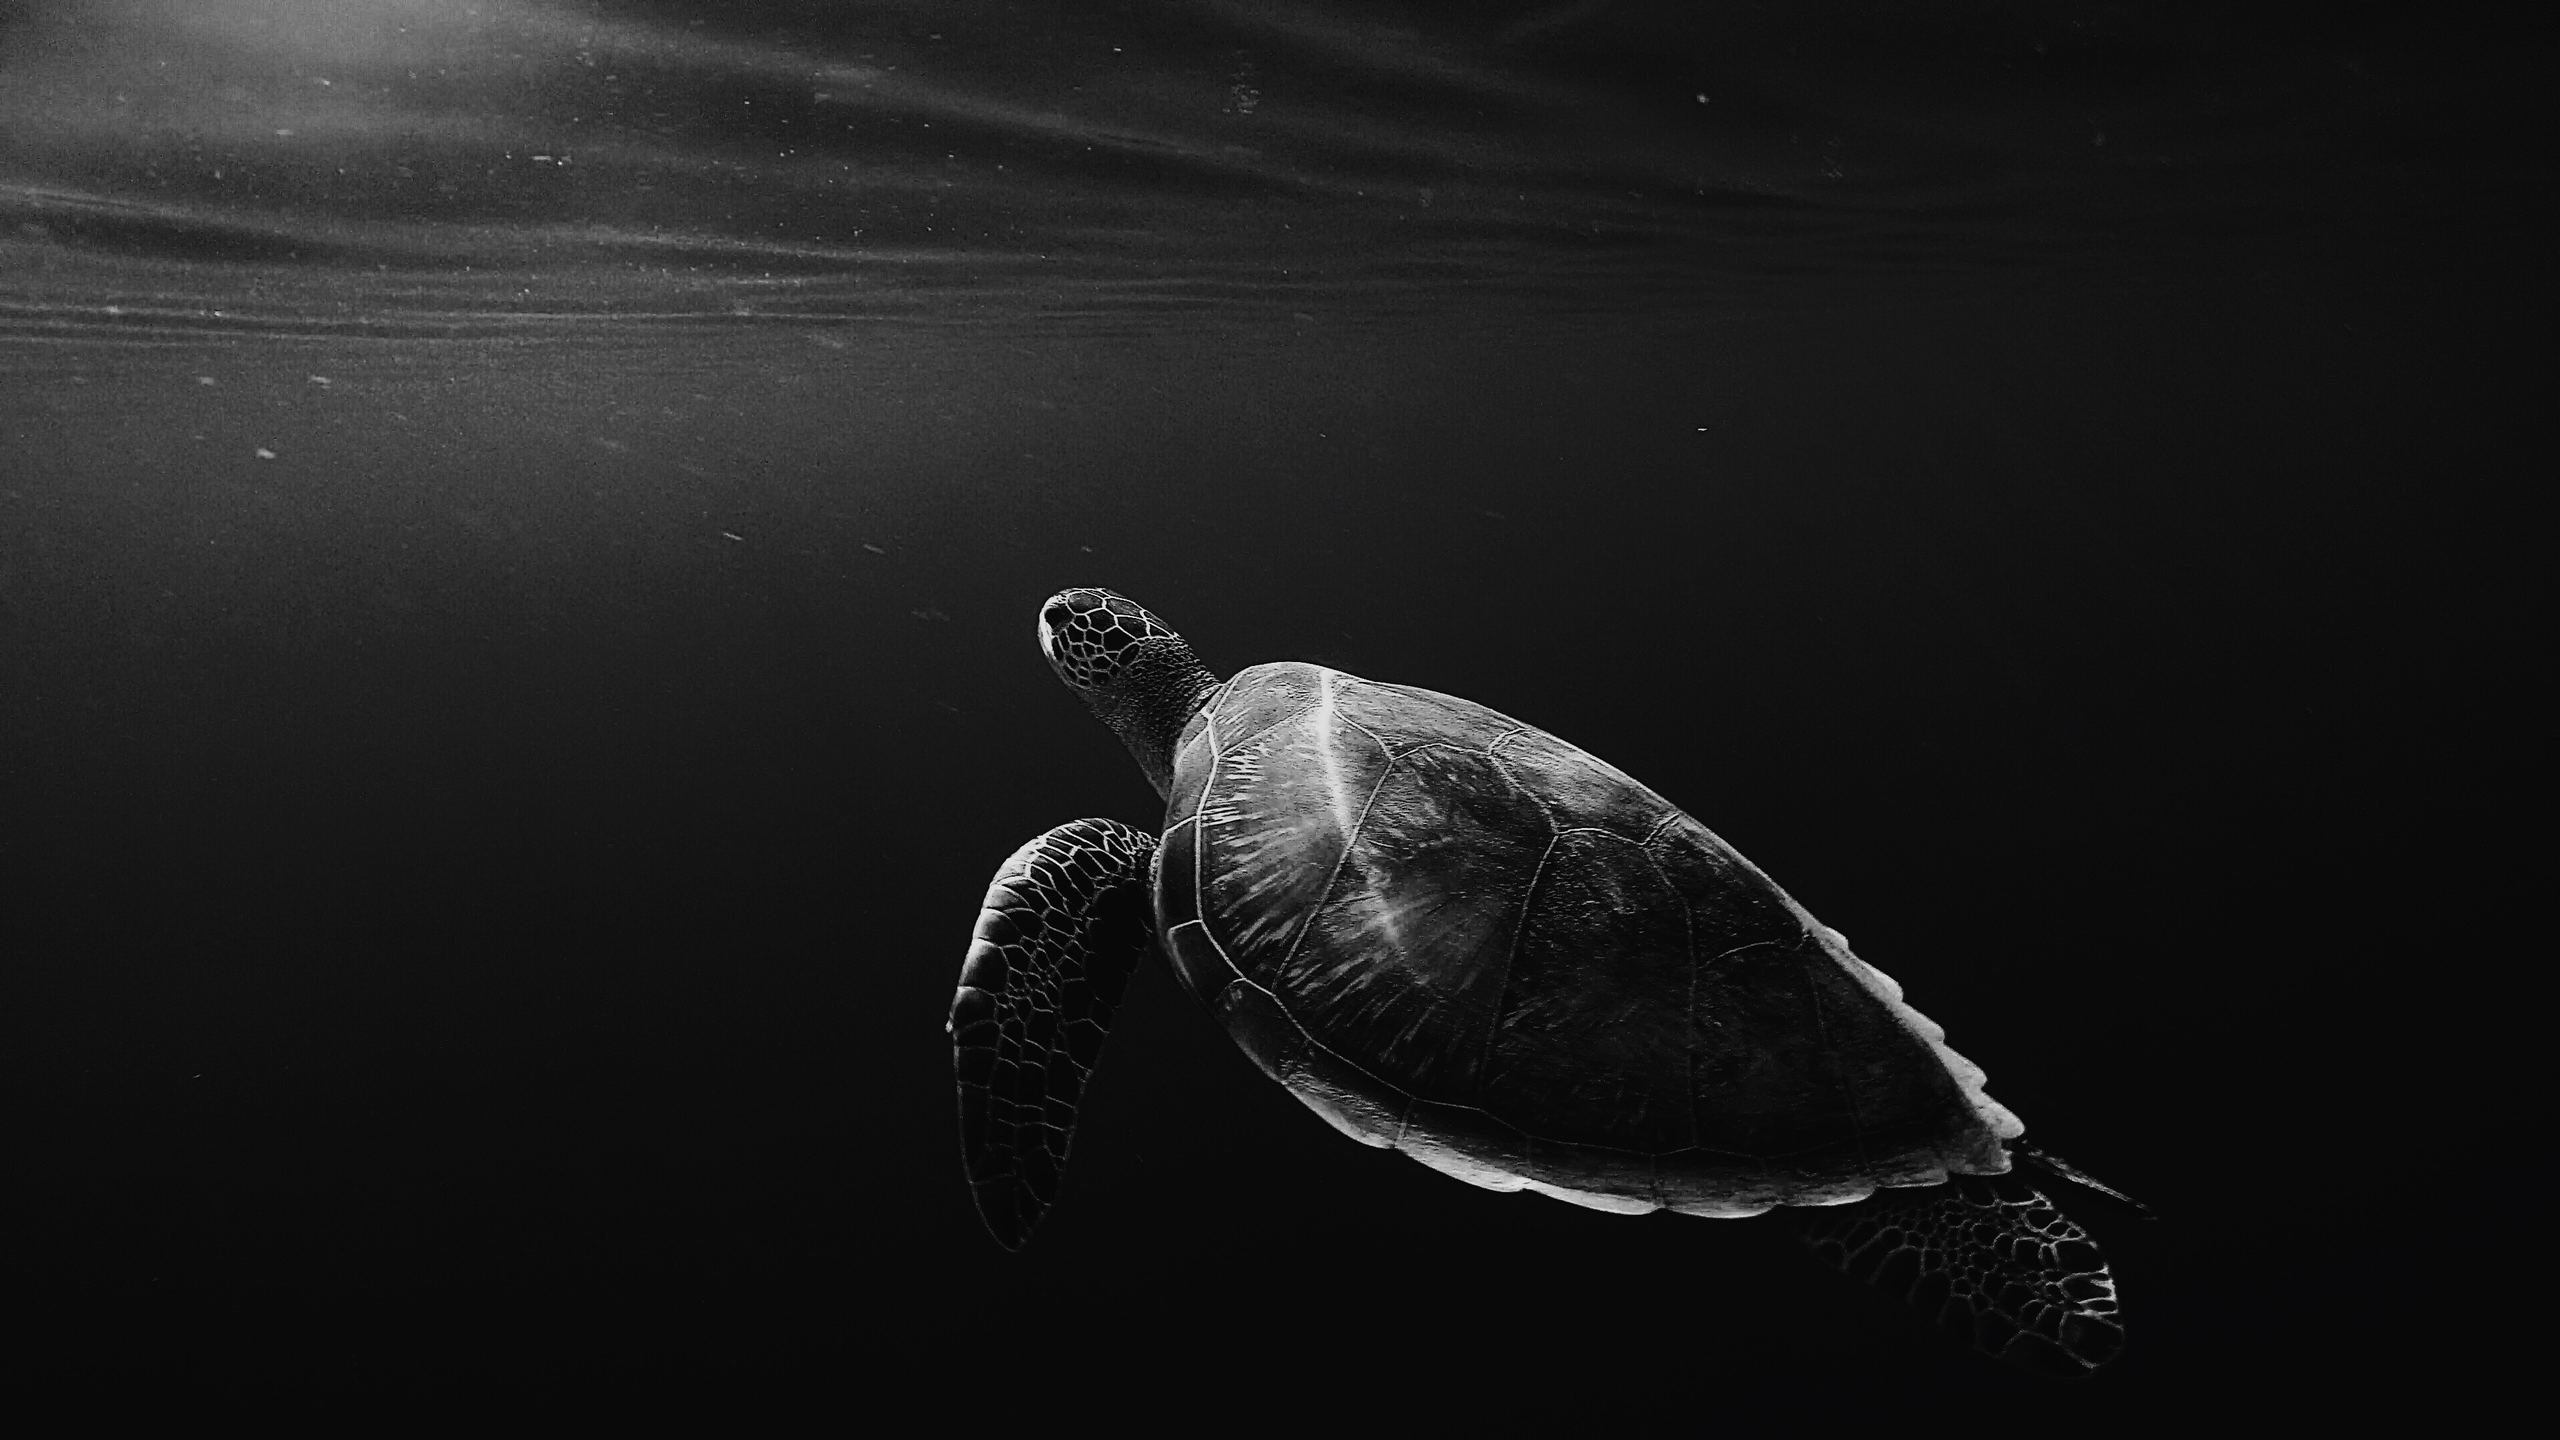 2560x1440 2560x1440 Turtle Oled 4k 1440P Resolution HD 4k Wallpapers, Images ...